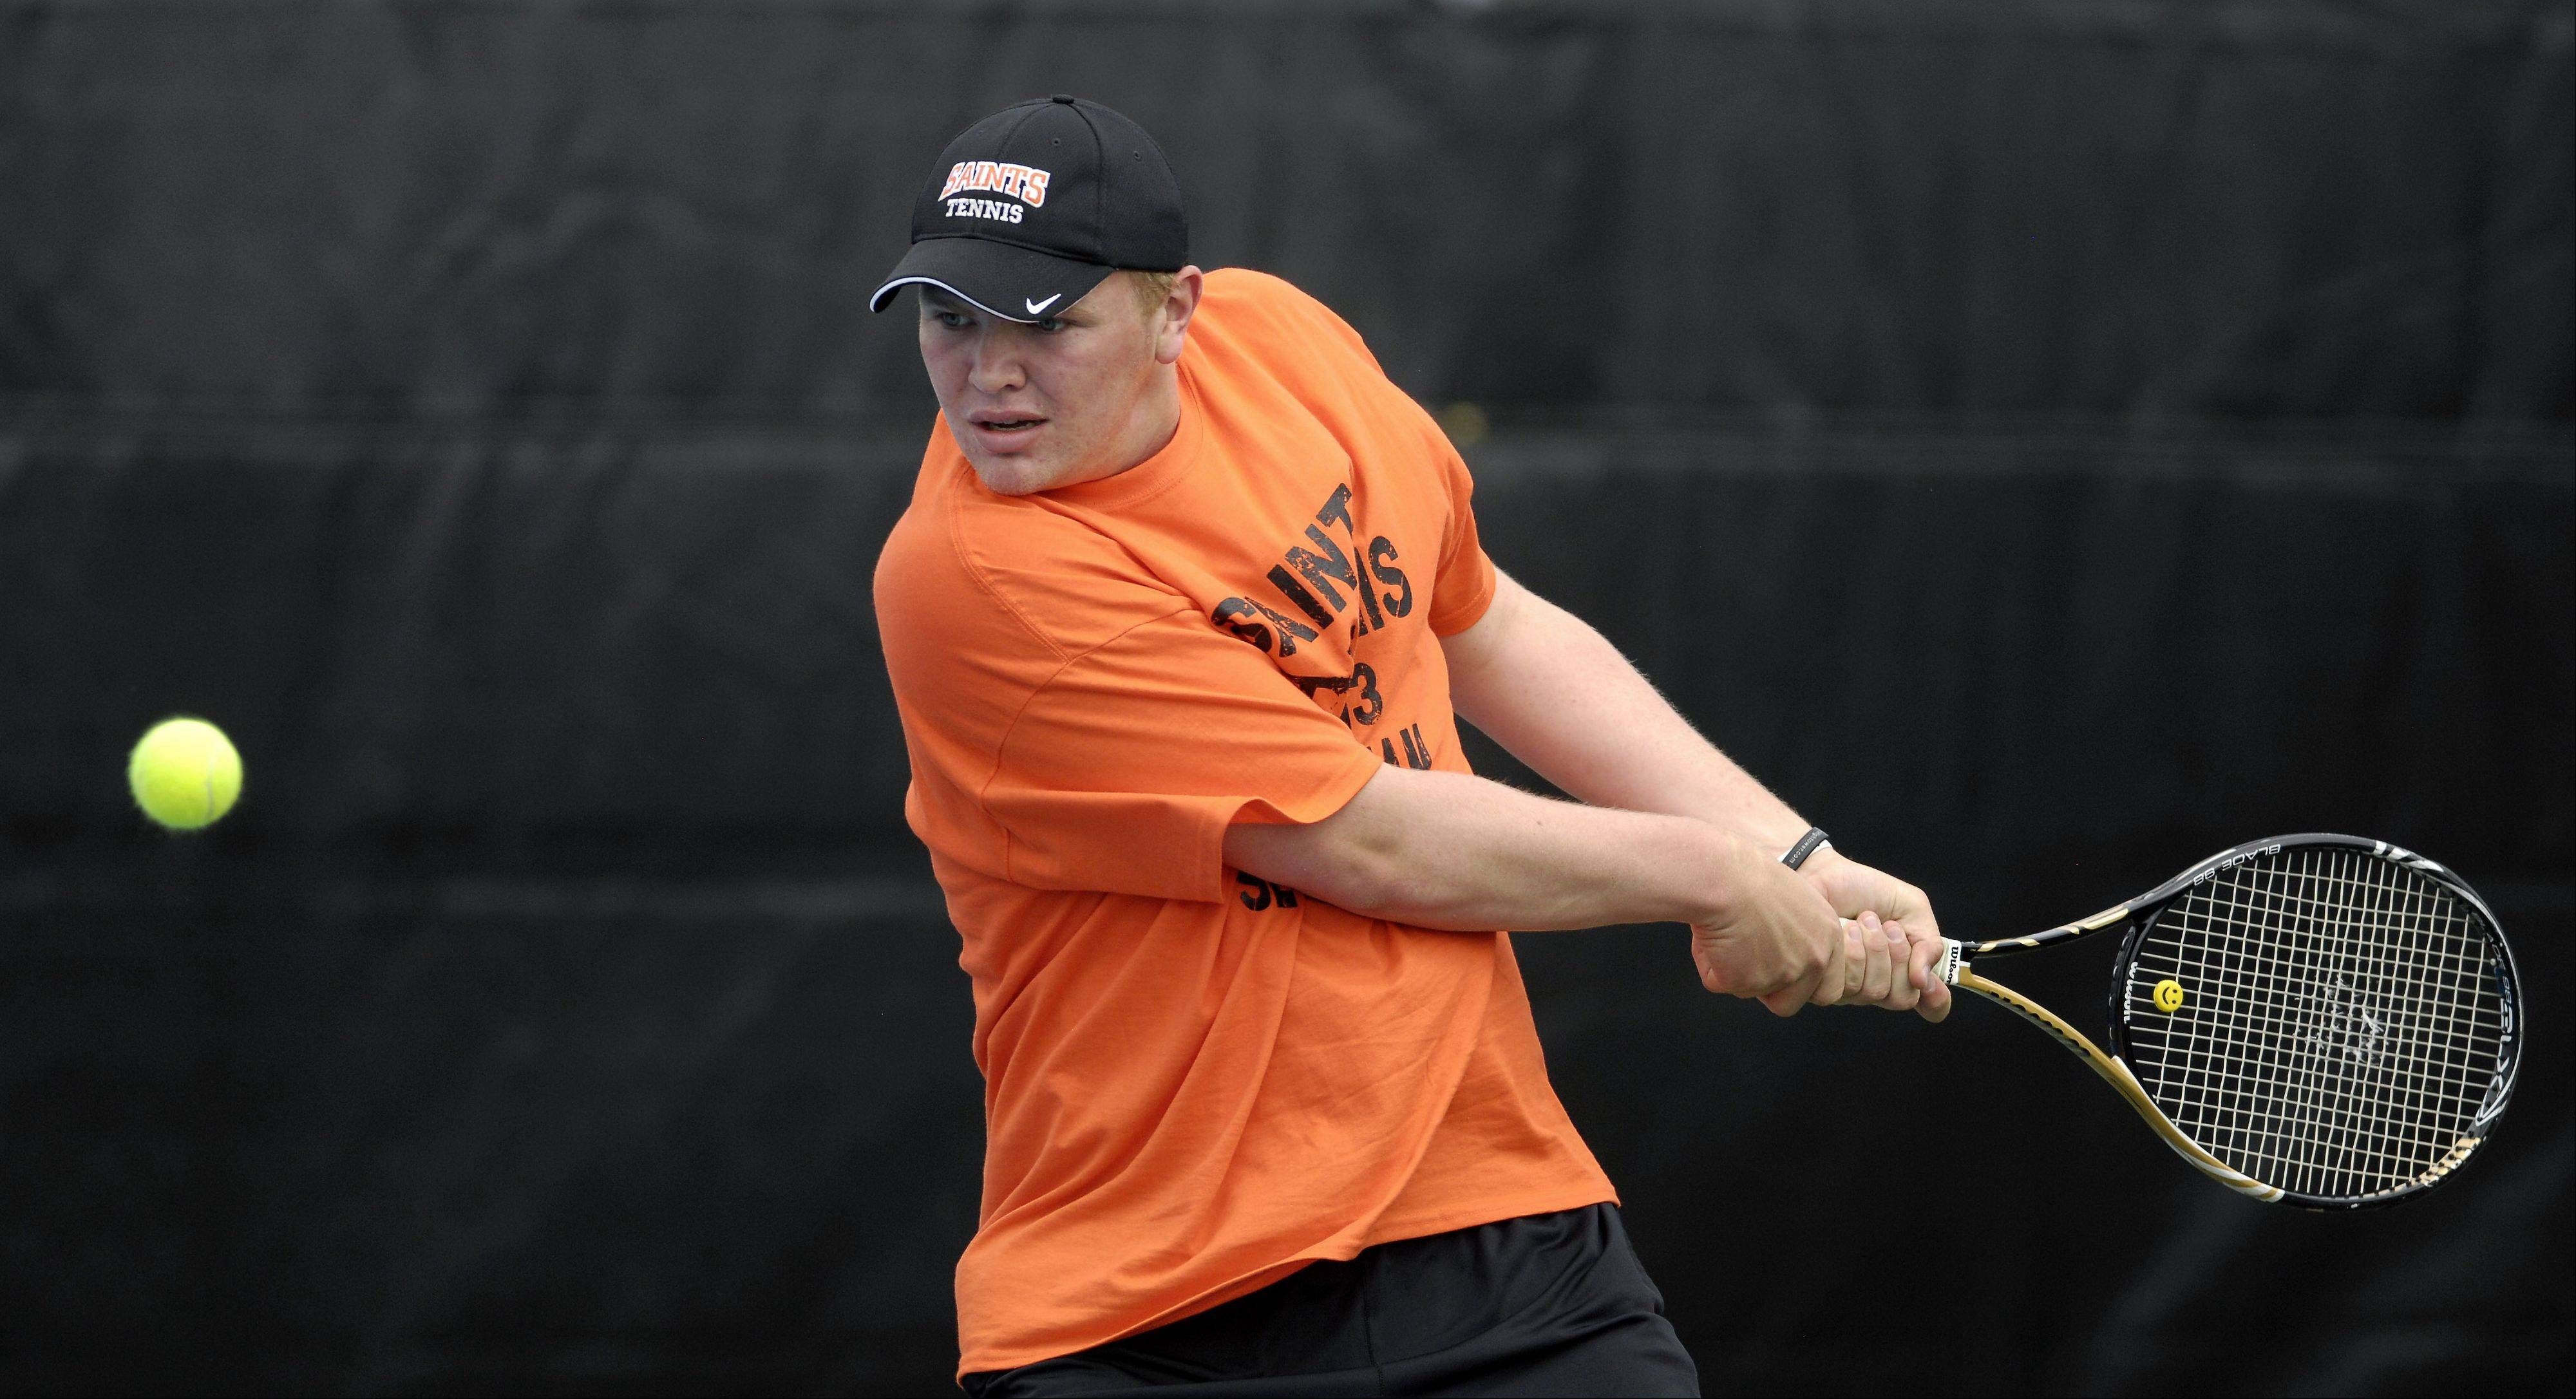 St. Charles East's Jasper Koenen readies his backhand during sectional tennis action at St. Charles North High School.